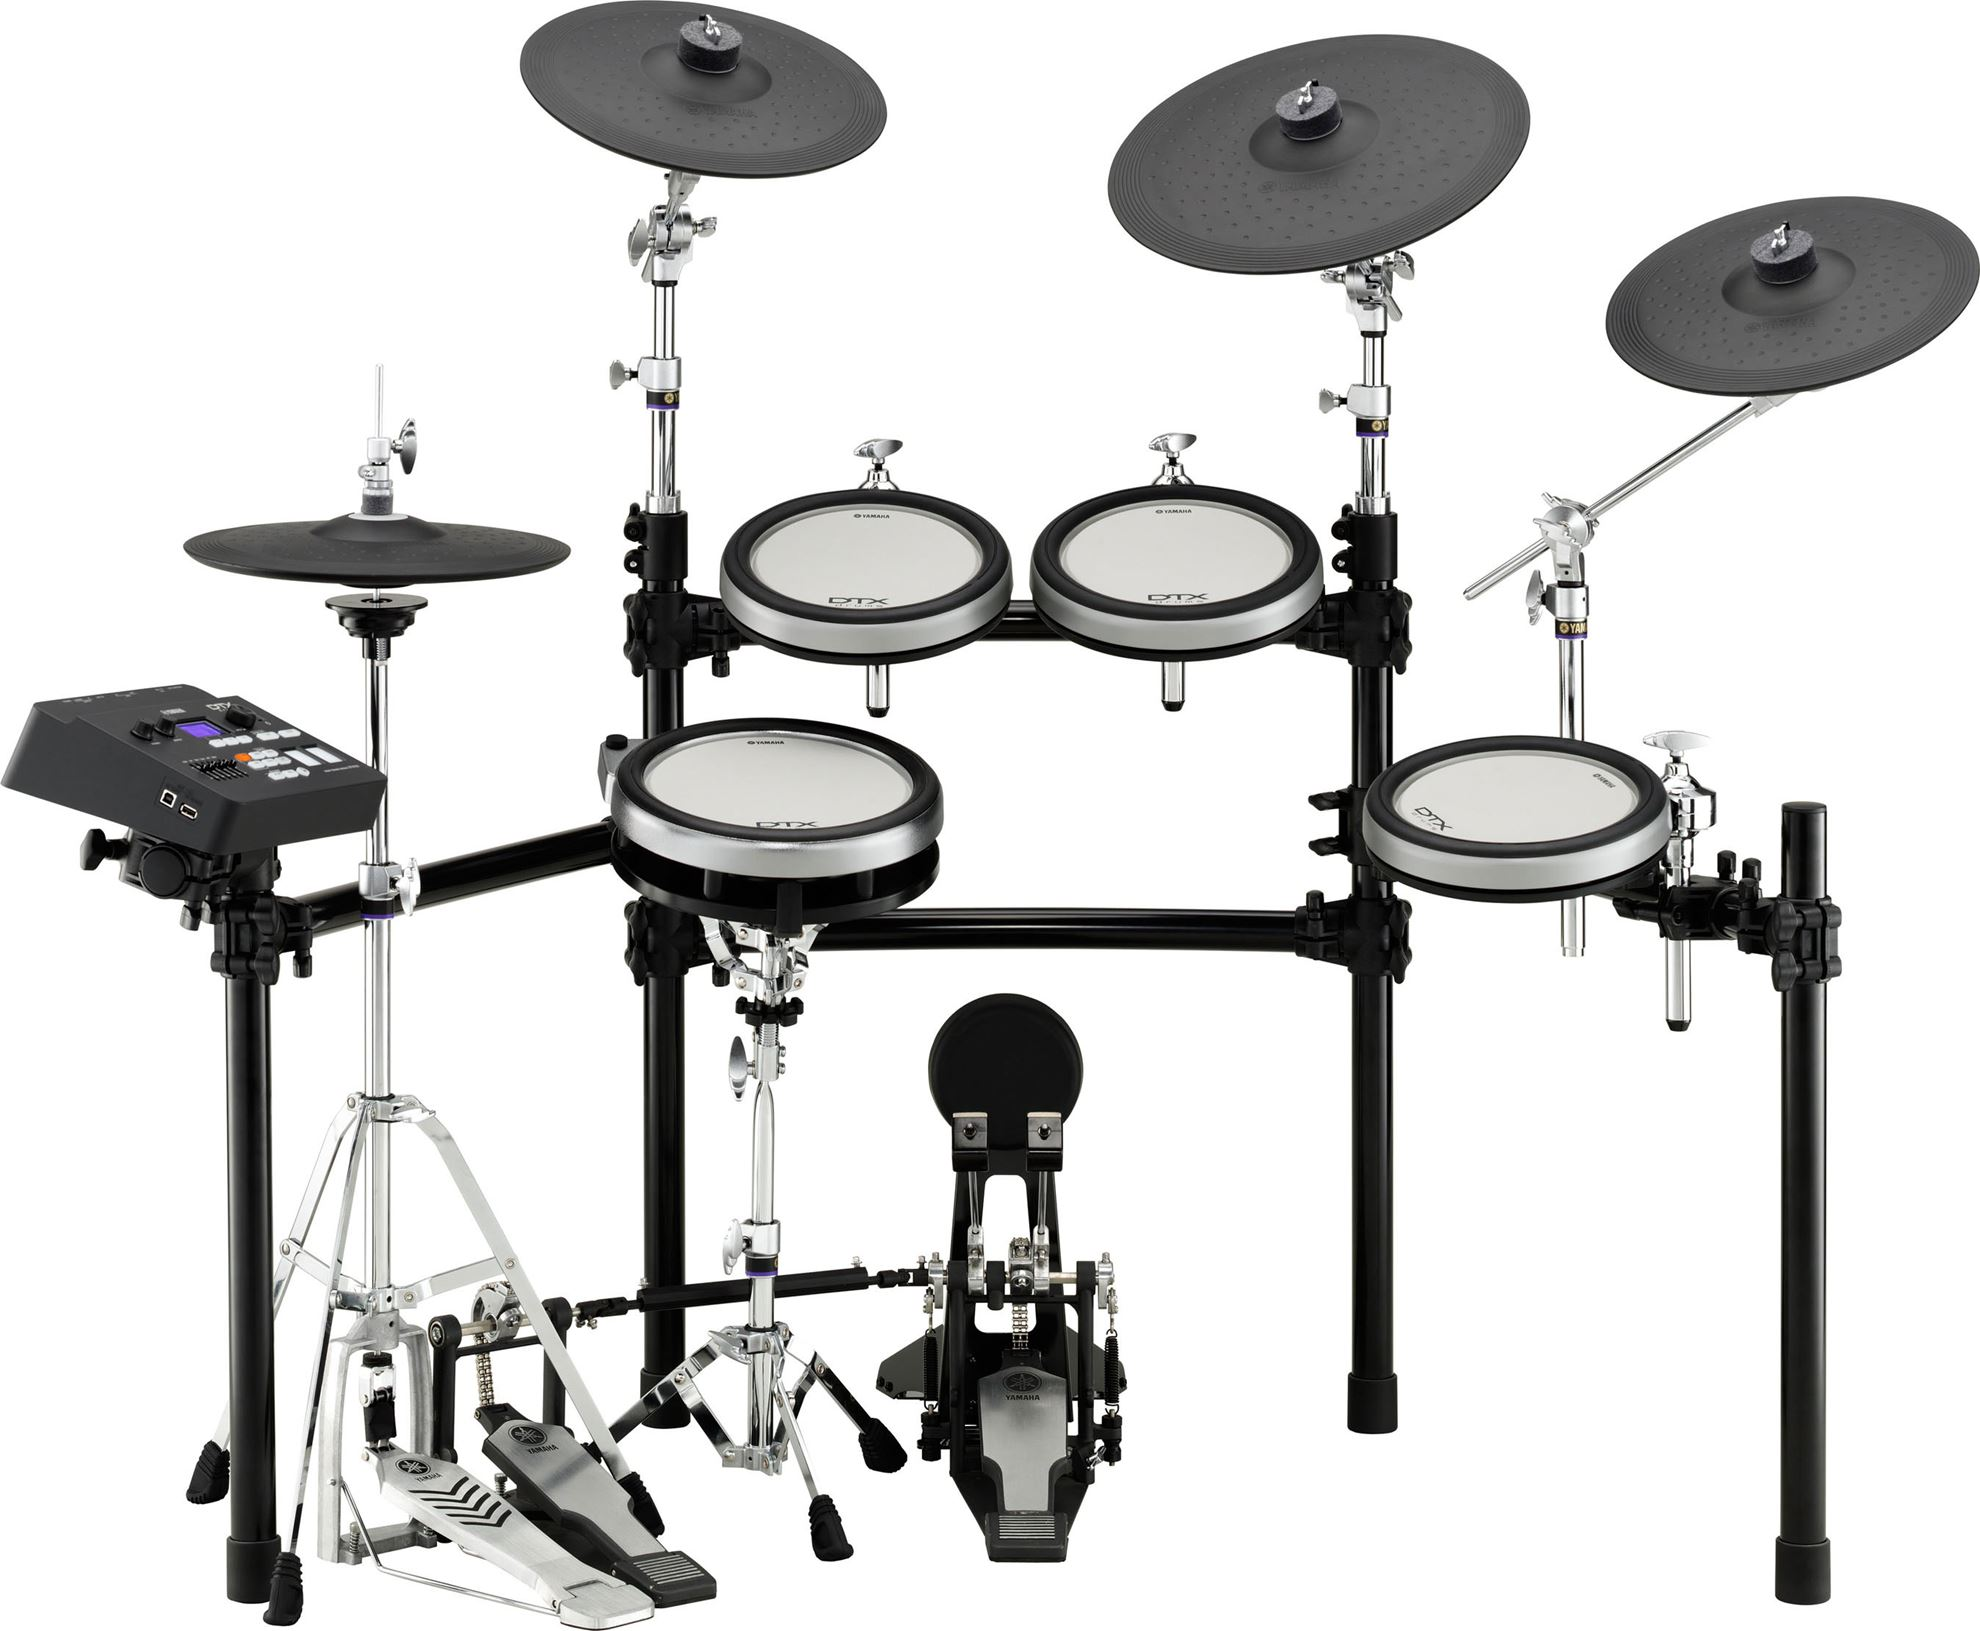 Yamaha Dtx750k Electronic Drum Kit With Hi Hat Control Perth